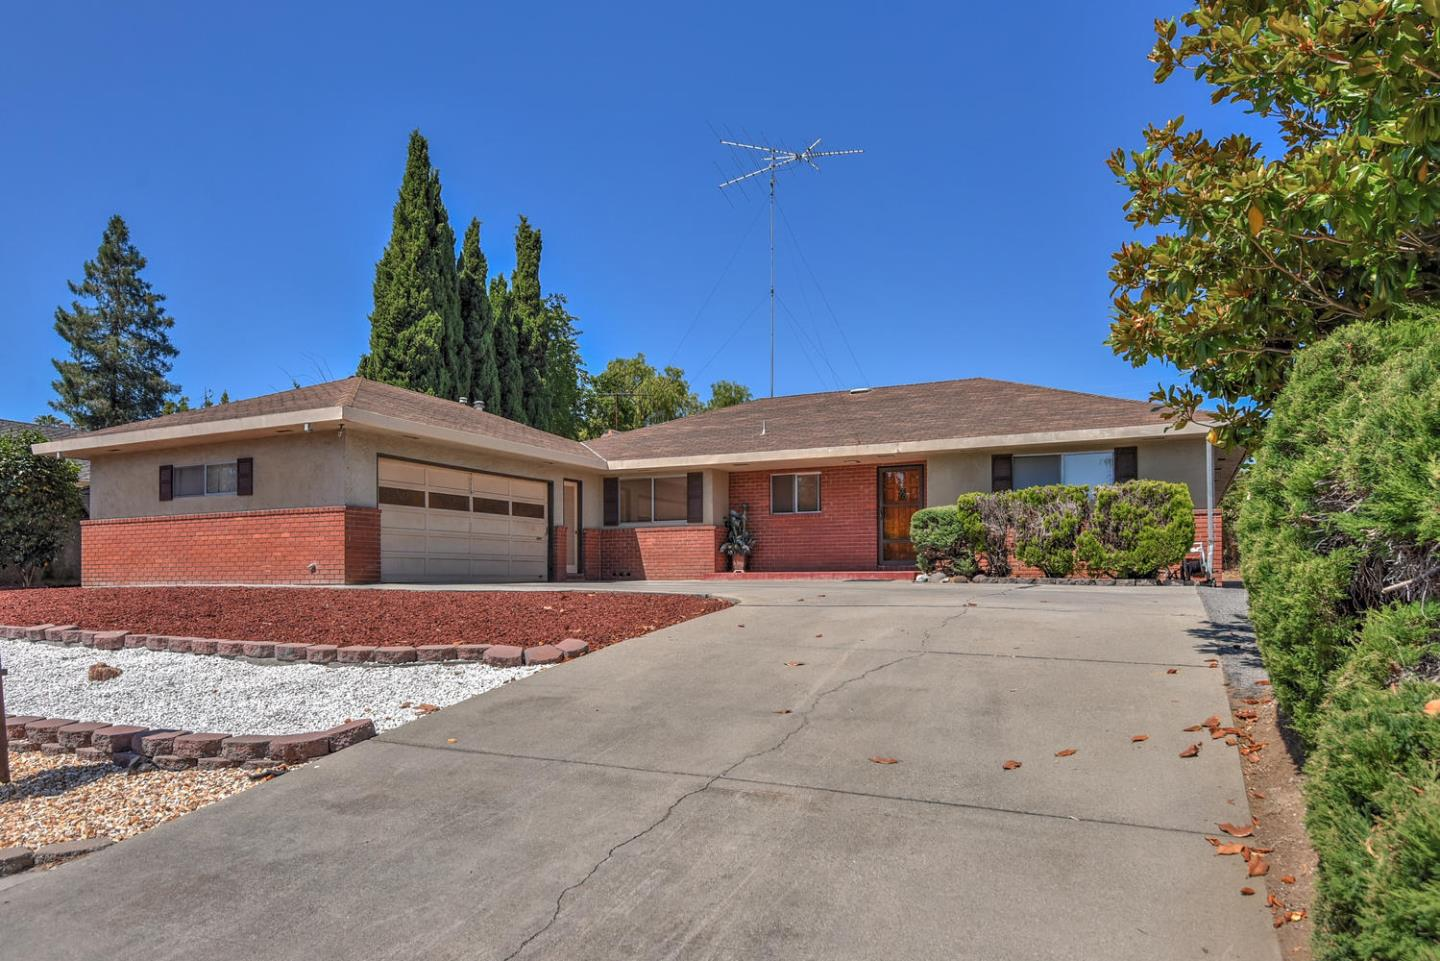 Additional photo for property listing at 10349 Palo Vista Road  Cupertino, Калифорния 95014 Соединенные Штаты